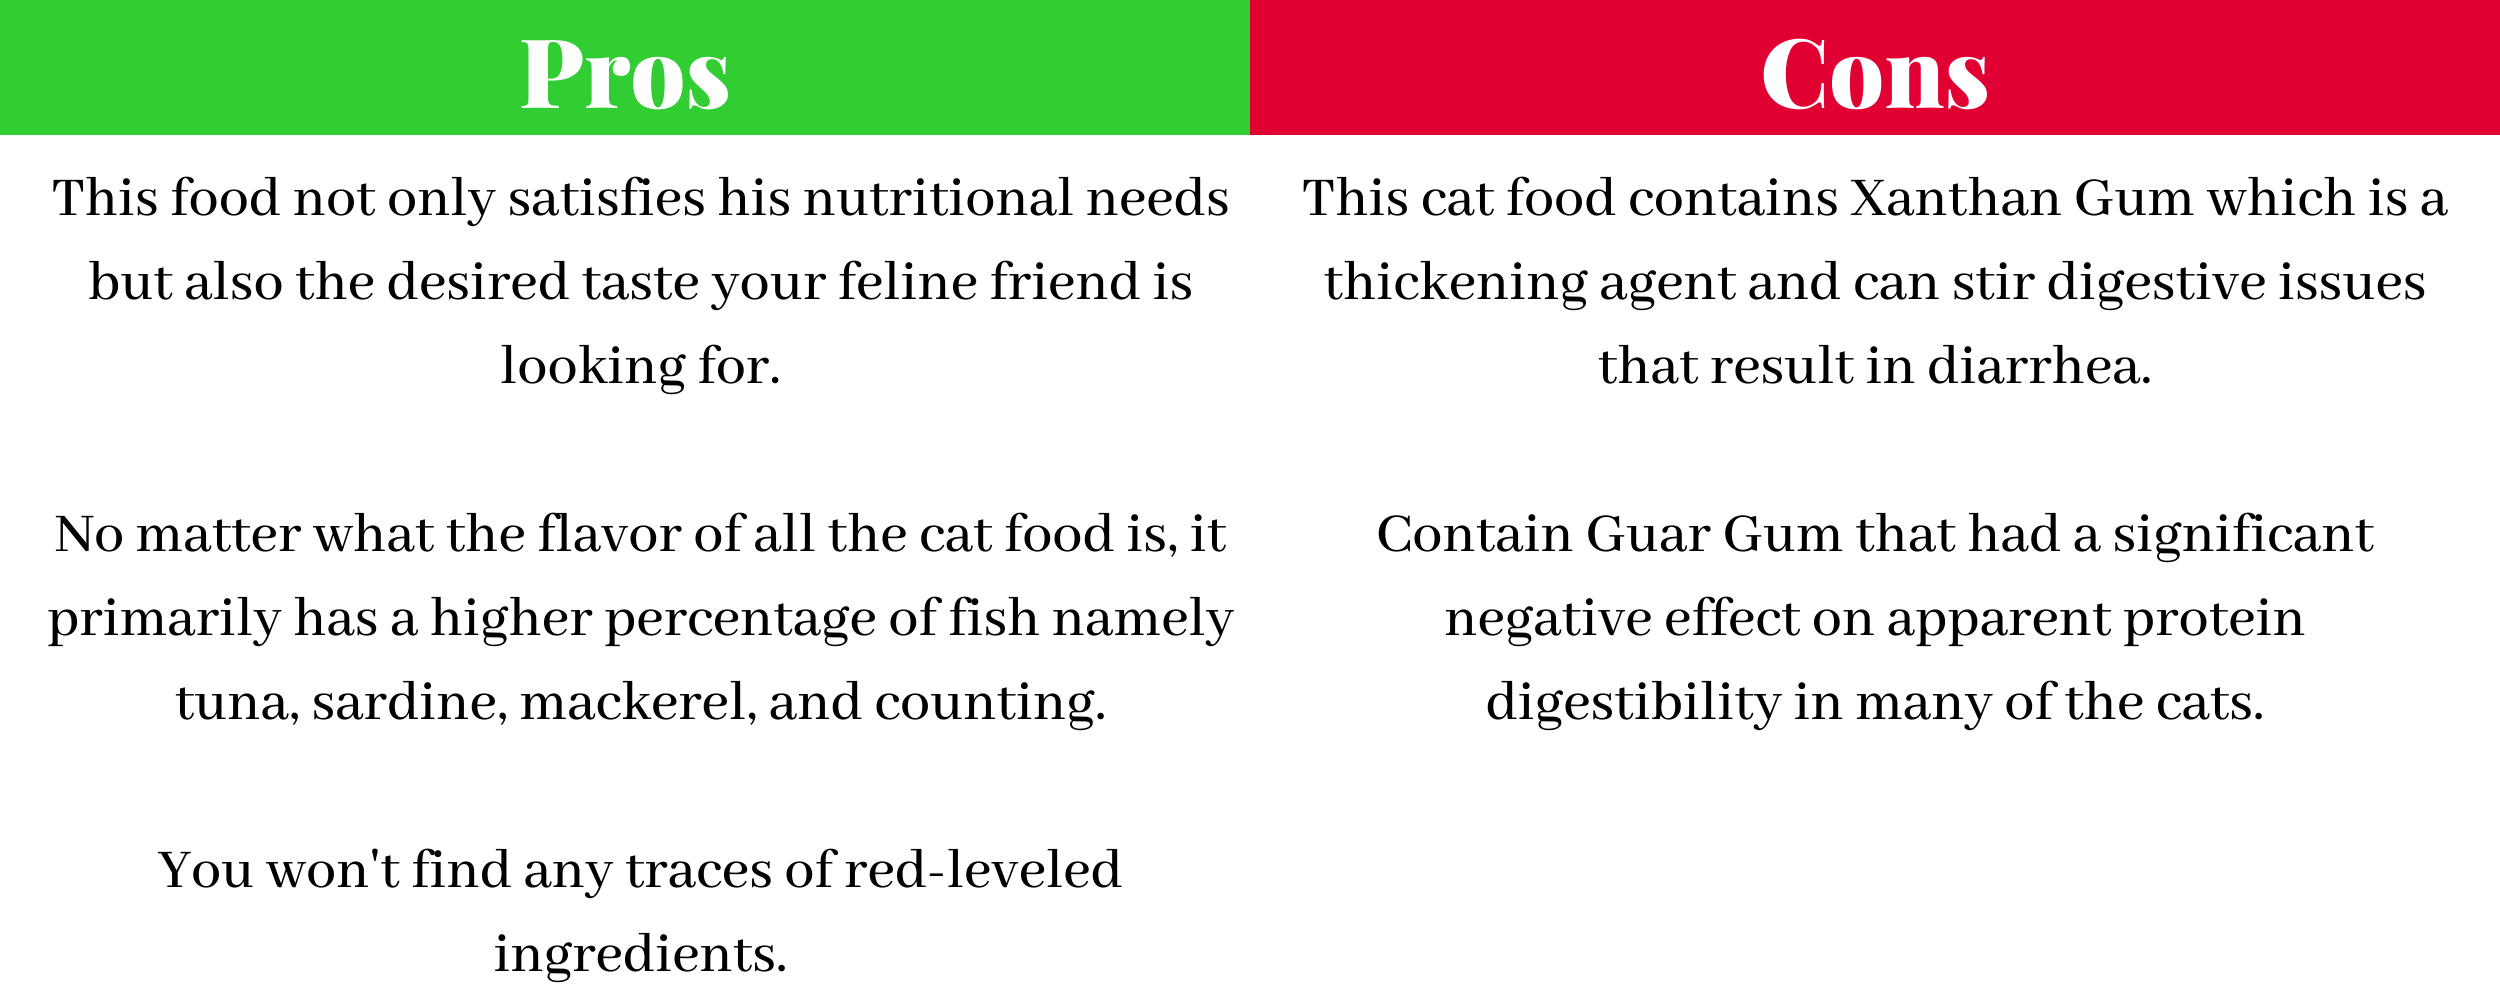 Pros and Cons of Tiki Cat Grill Grain-Free Low-Carbohydrate Wet Food